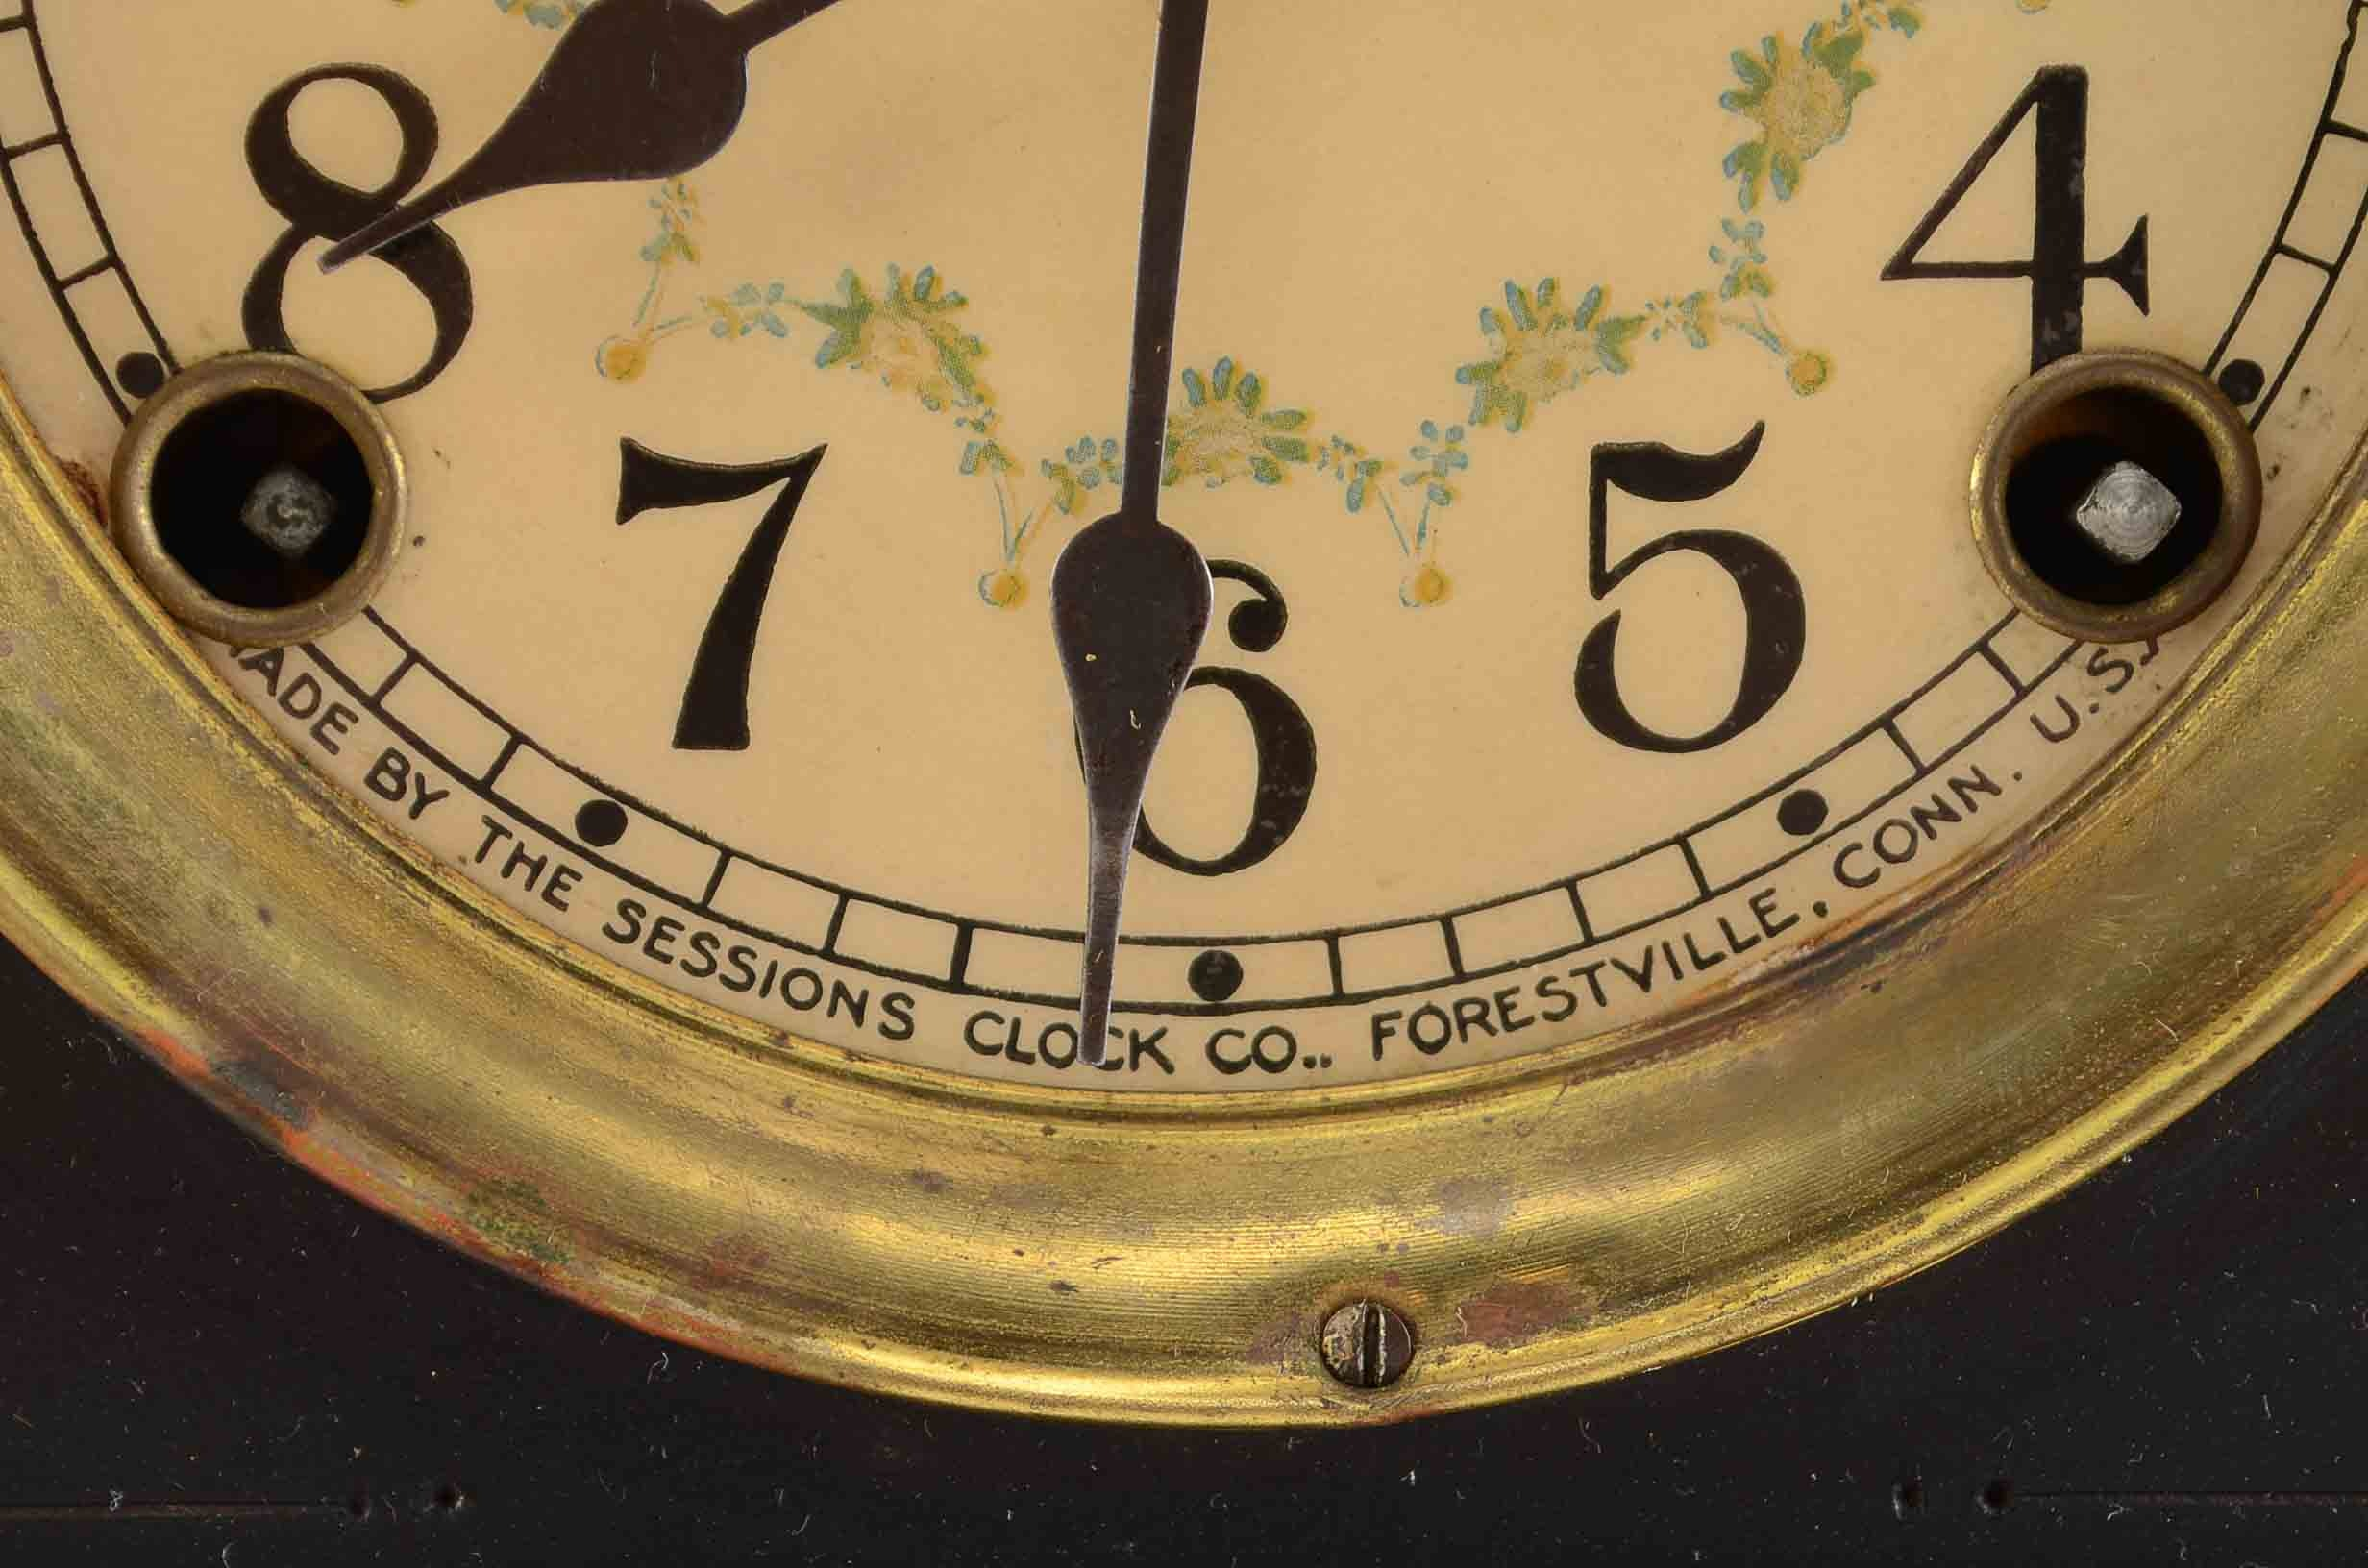 Early 20th Century Sessions Mantel Clock : EBTH